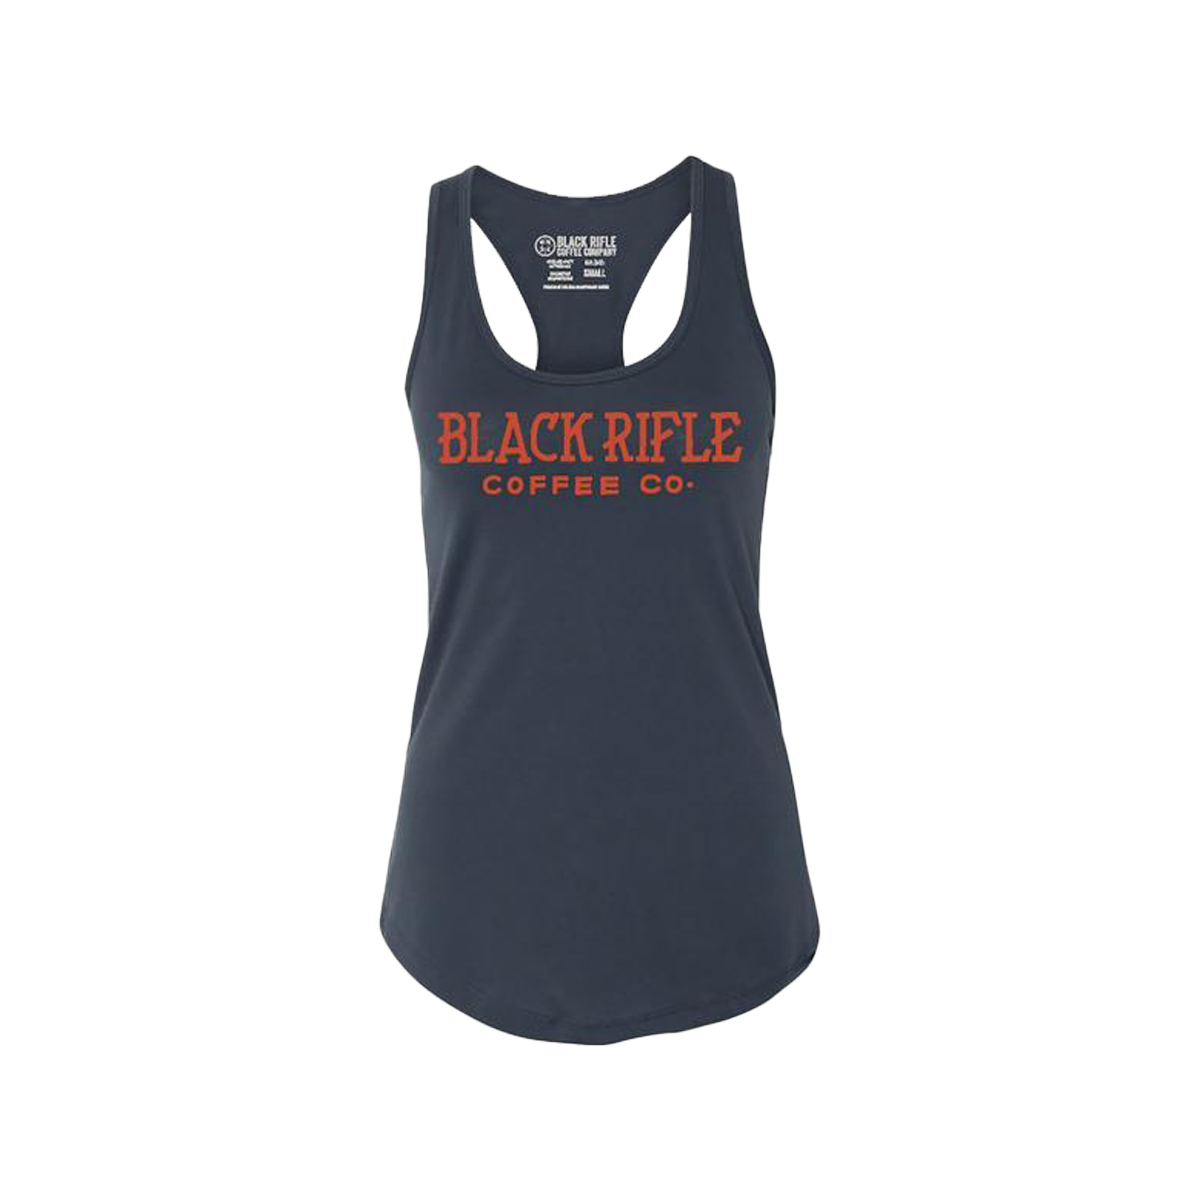 BRCC Antique Logo Womens Tank Top - Indigo